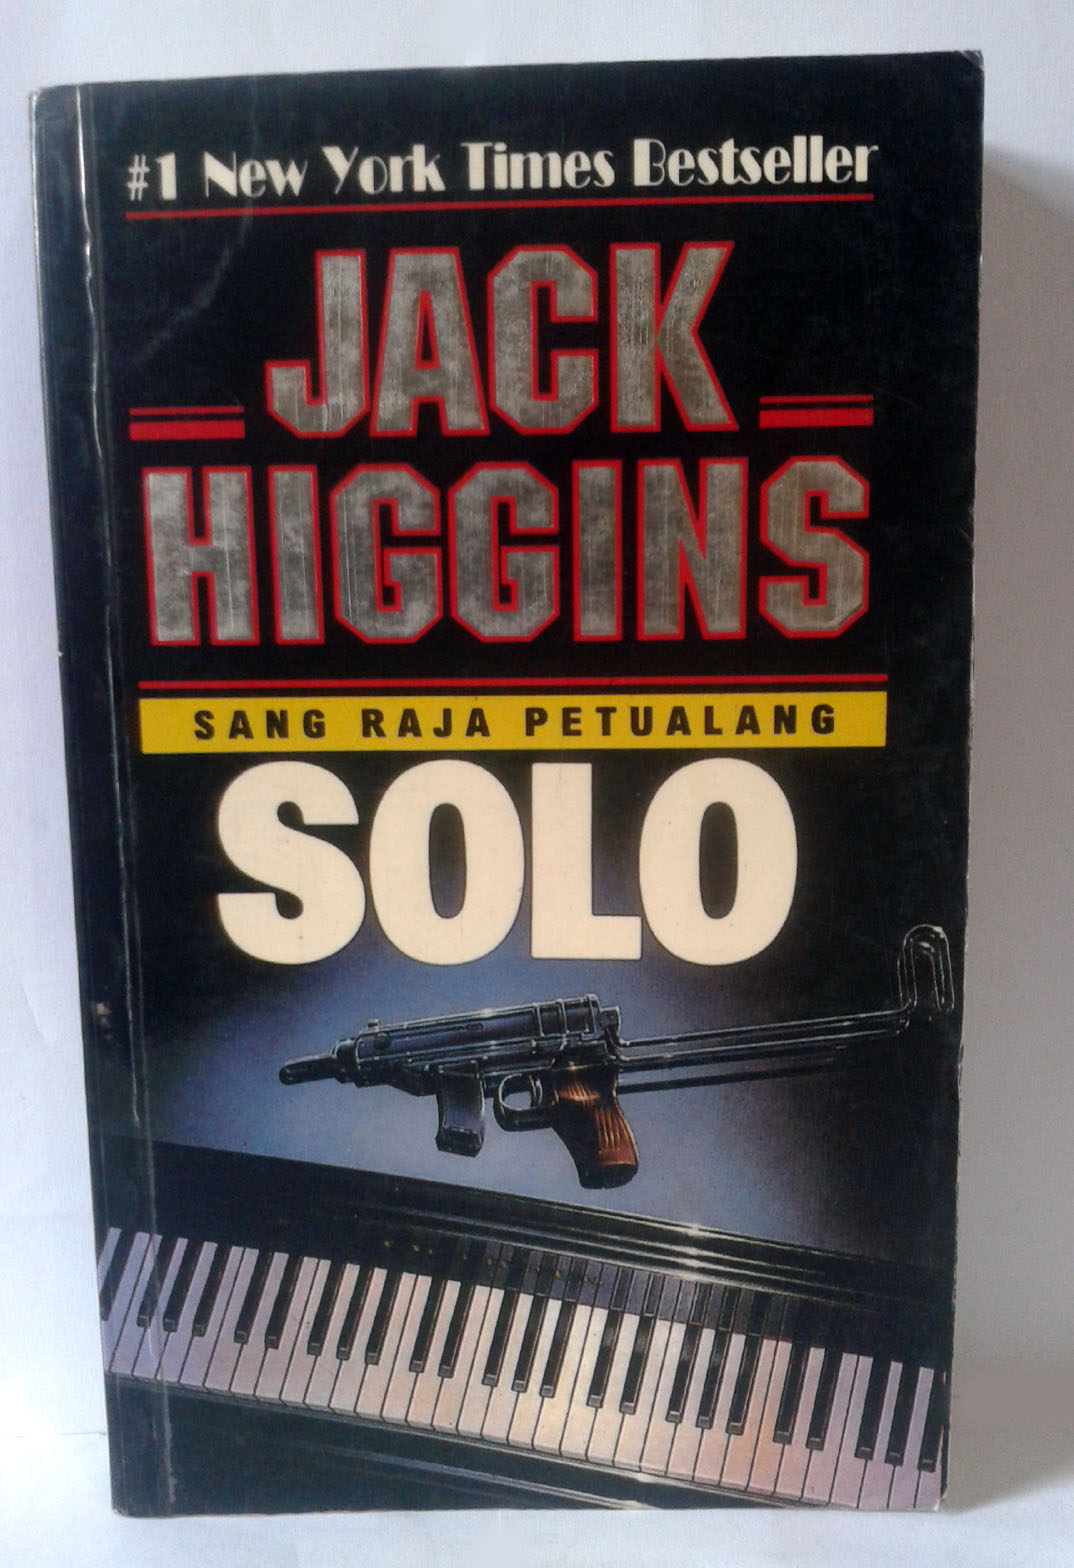 an analysis of solo a novel by jack higgins